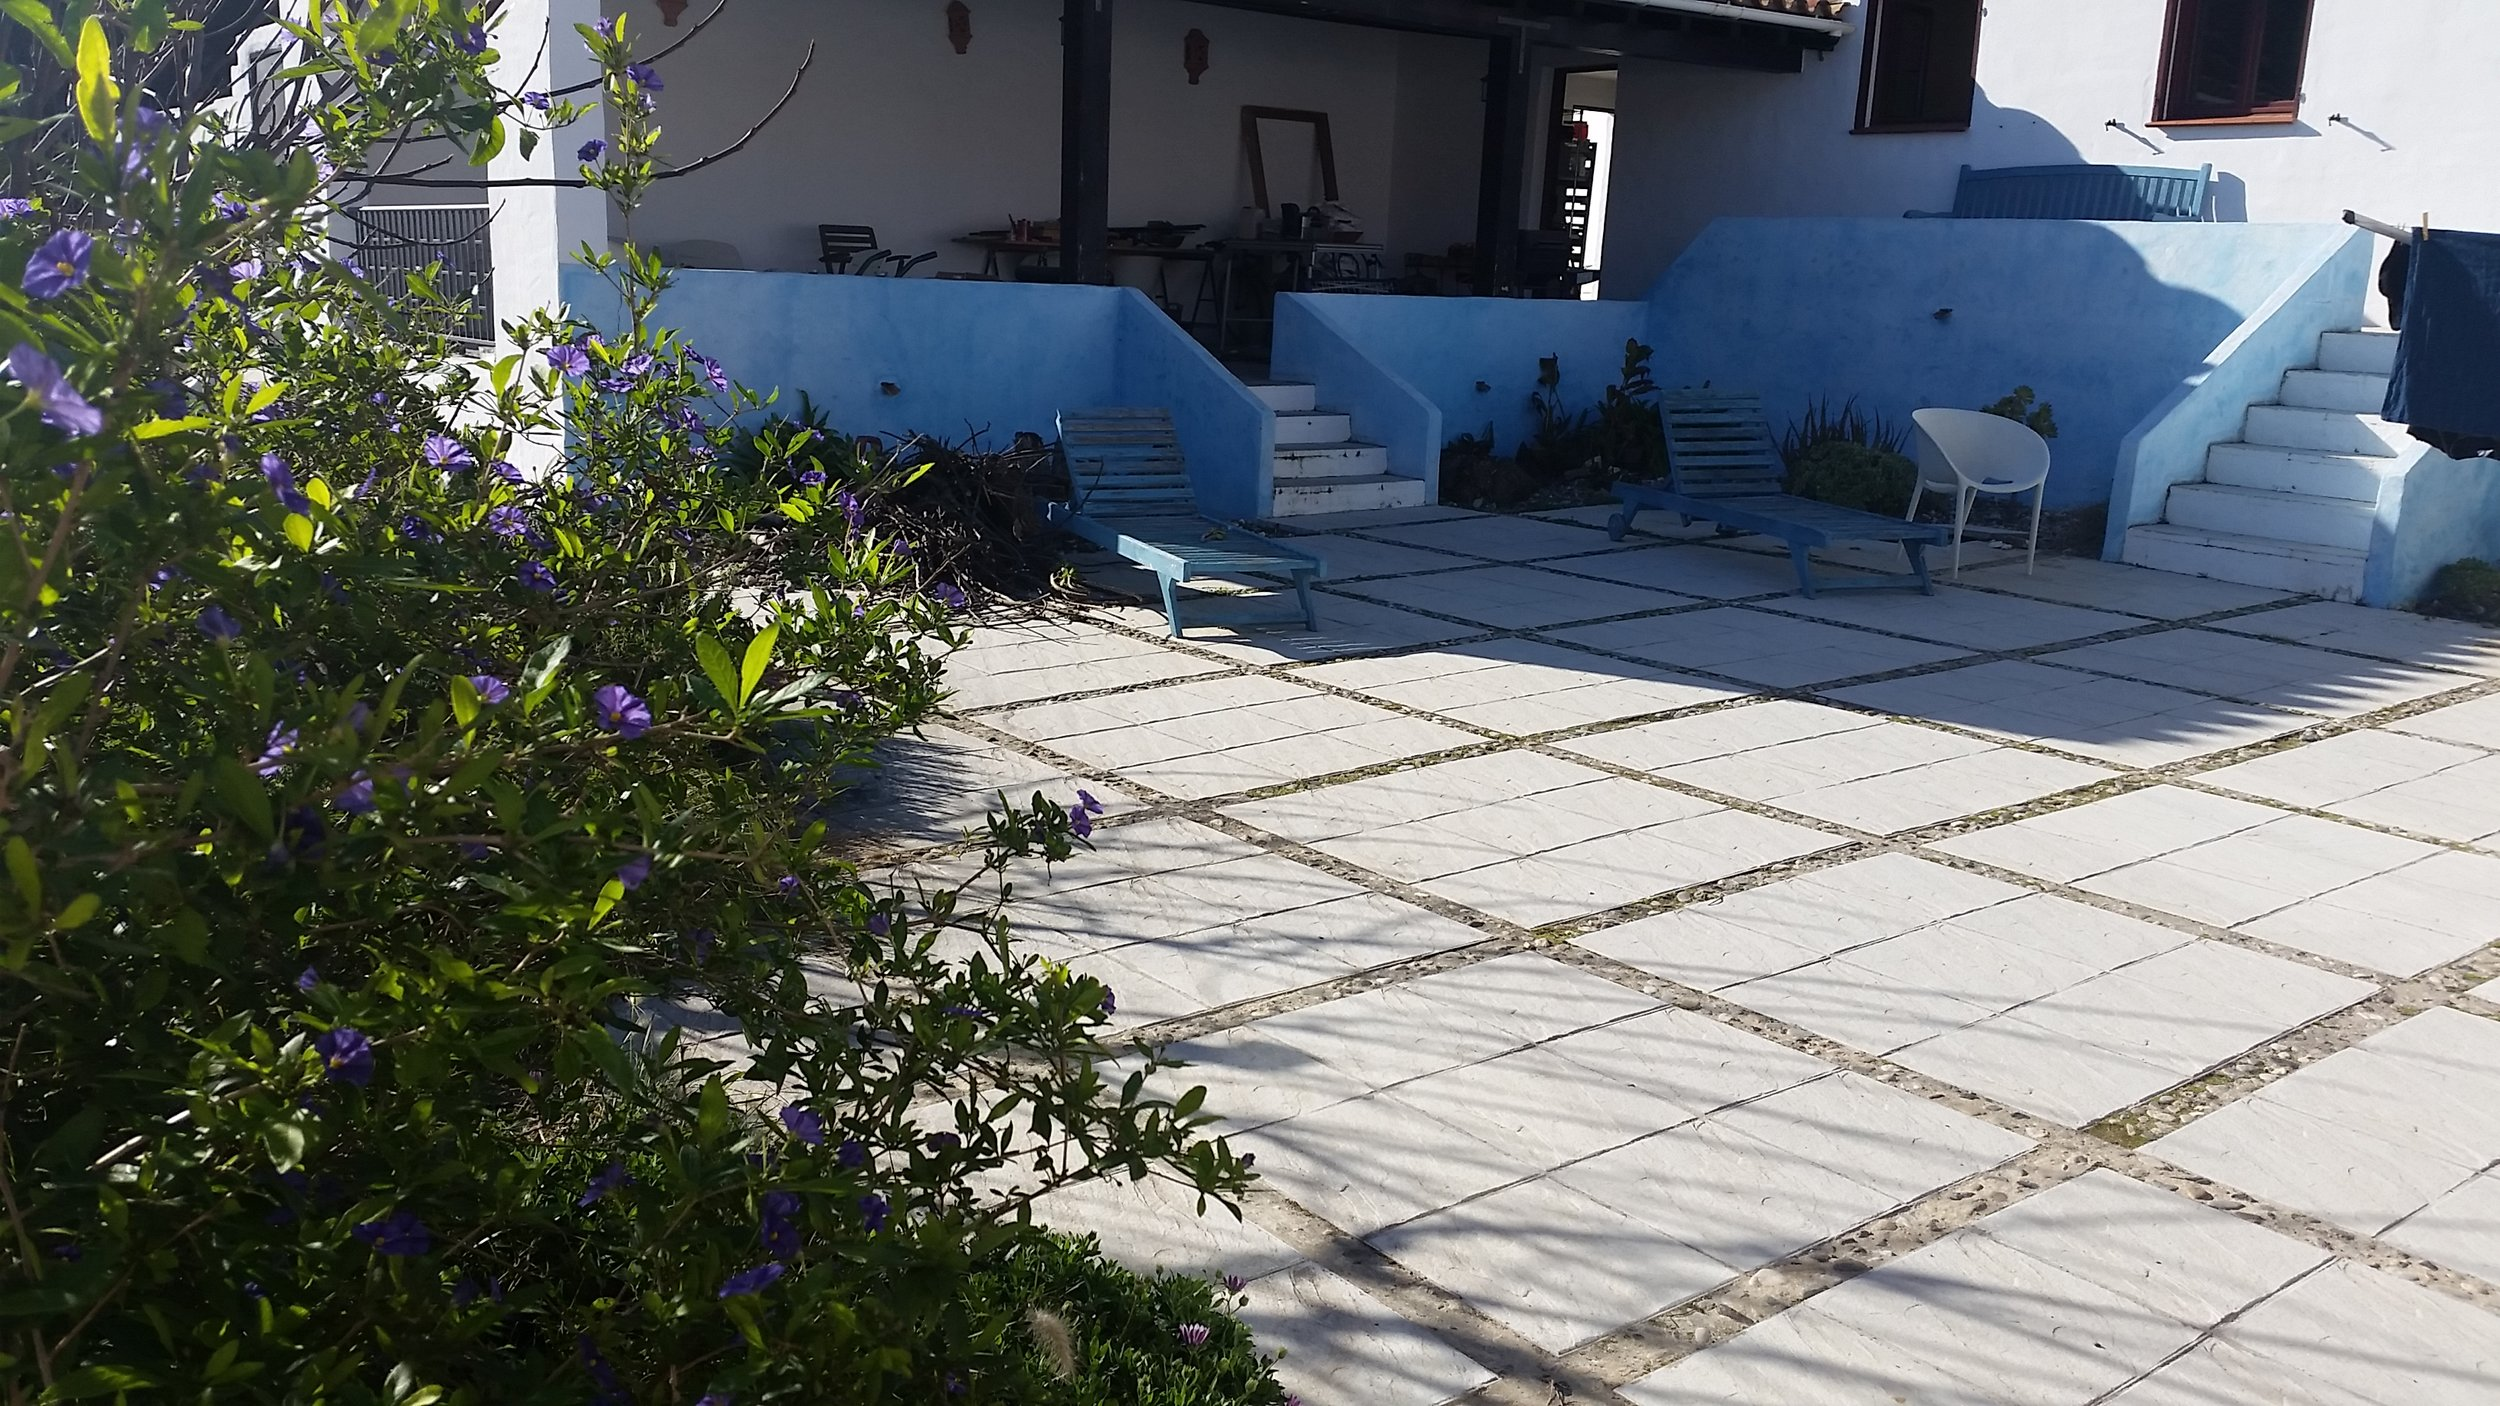 The courtyard and covered porch next to the casita